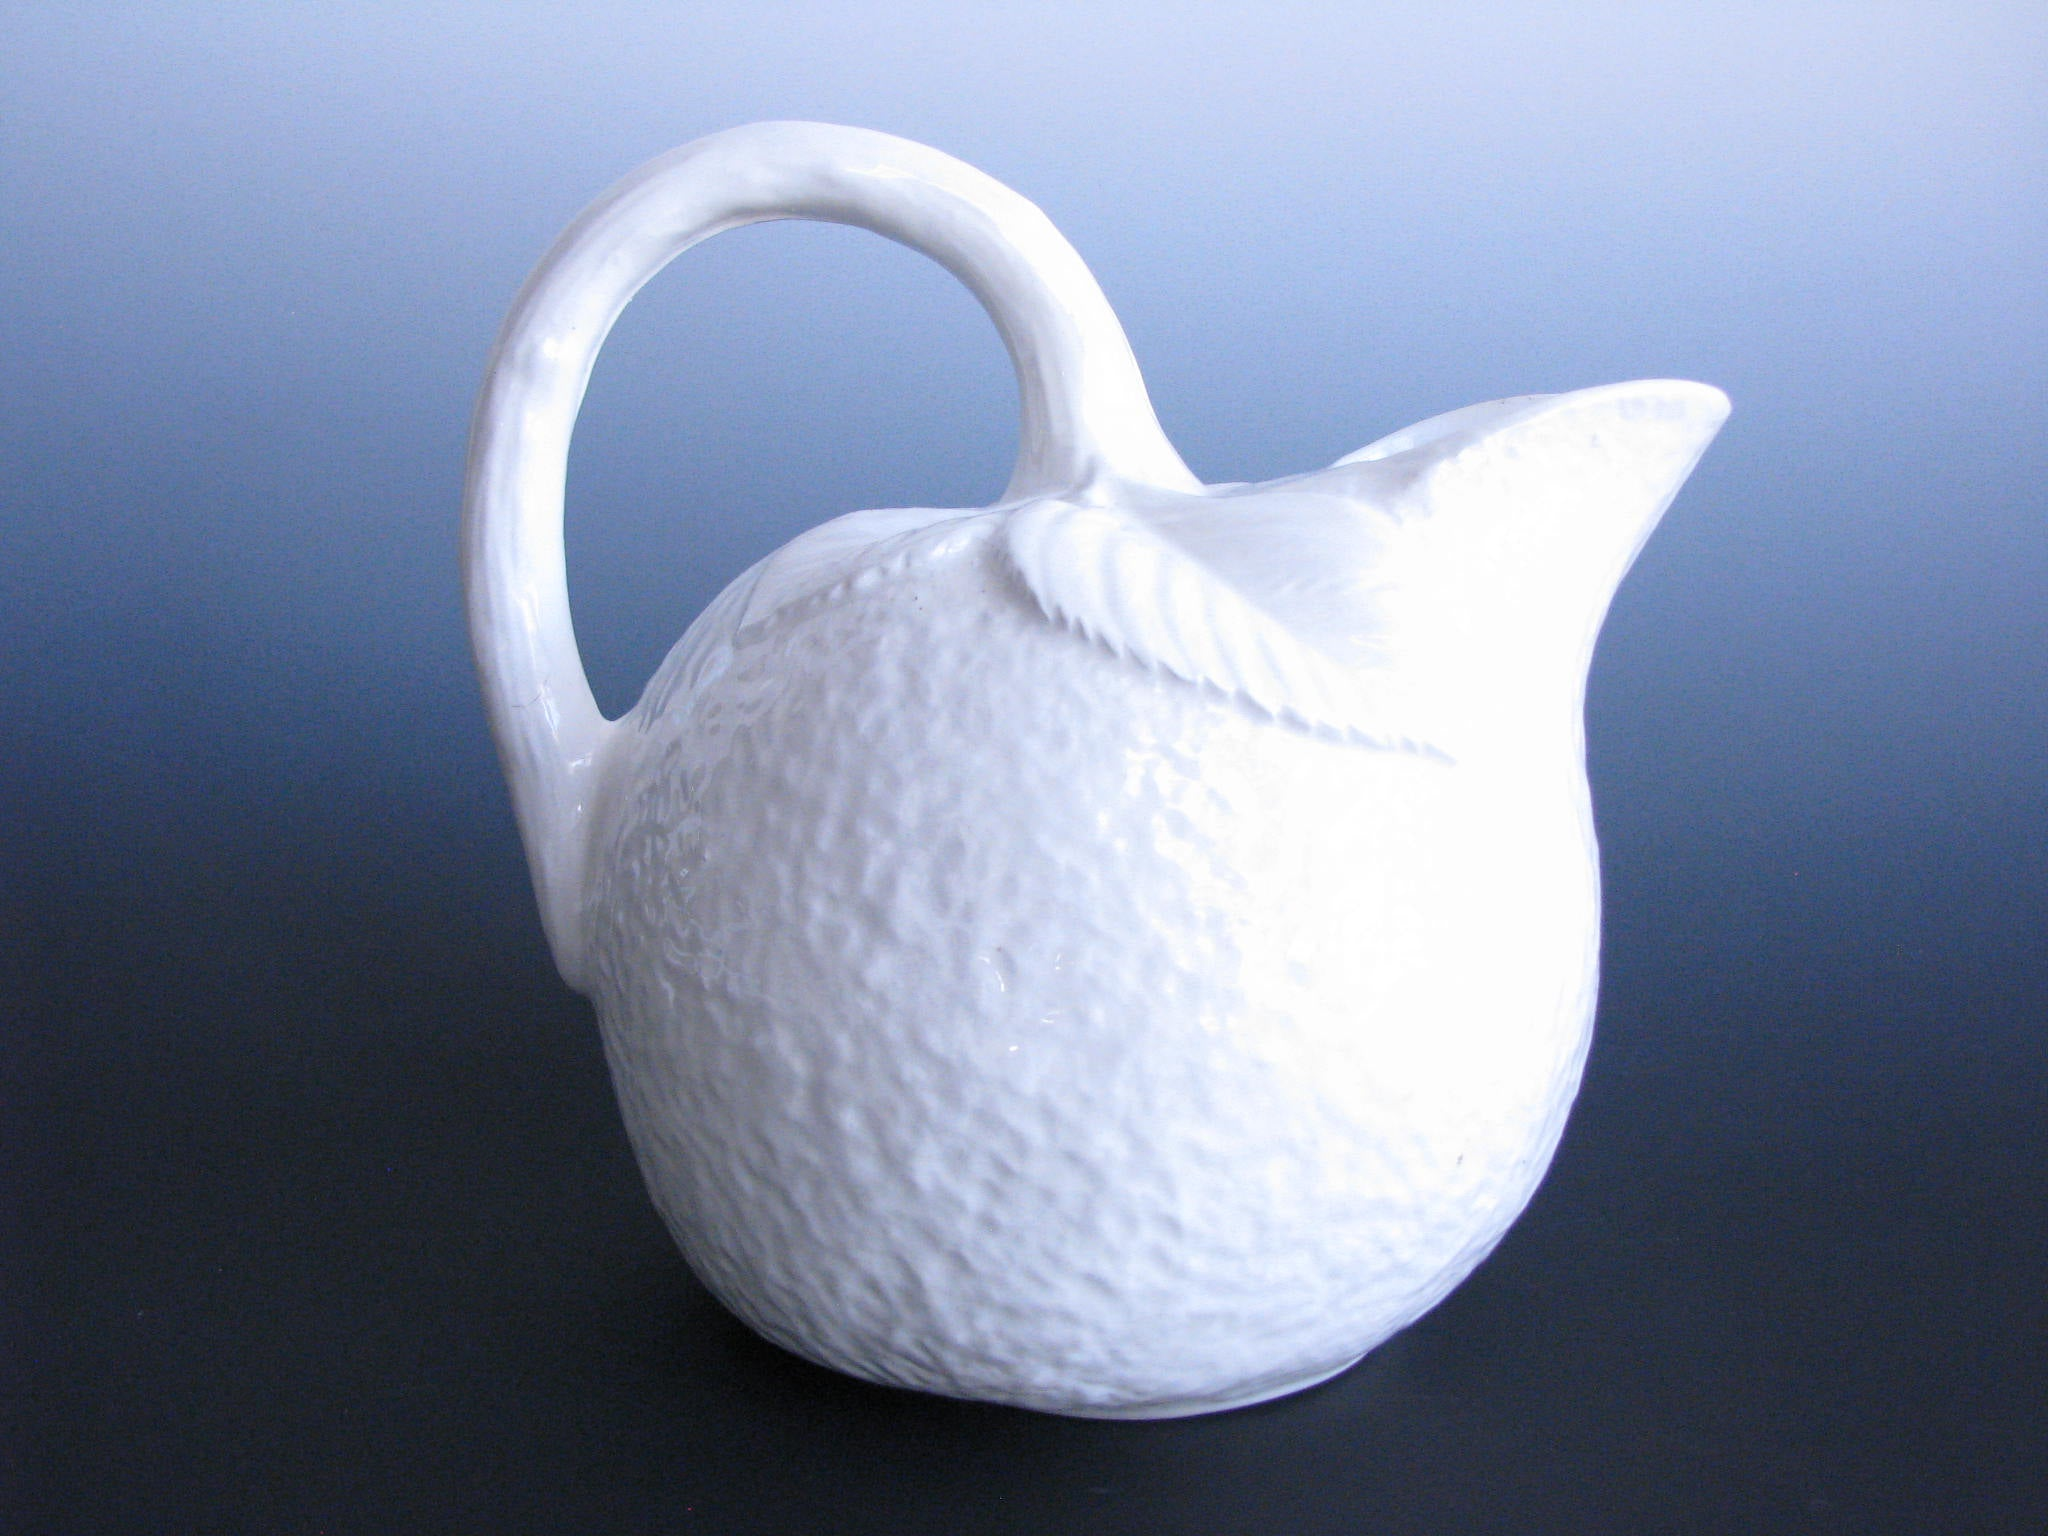 edgebrookhouse - Vintage White Ceramic Lemon Pitcher Made in Italy by Ancora